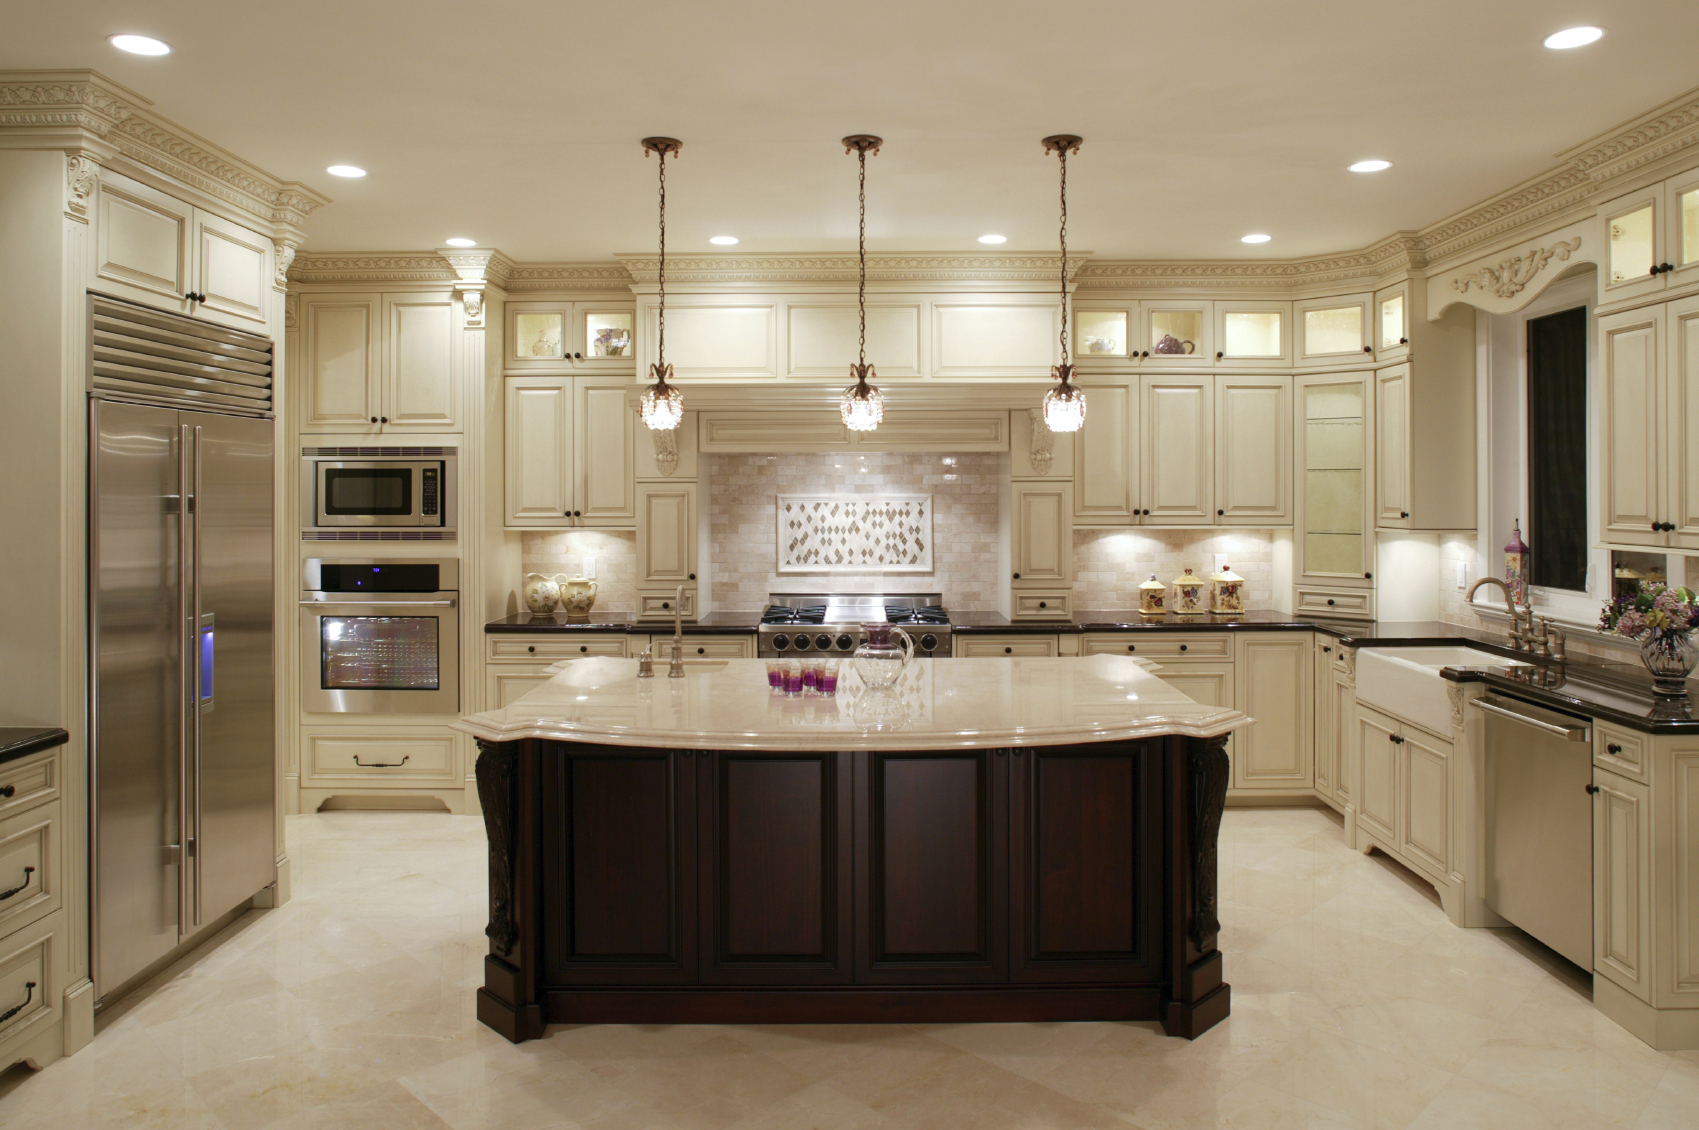 u shaped kitchens photos photo - 5